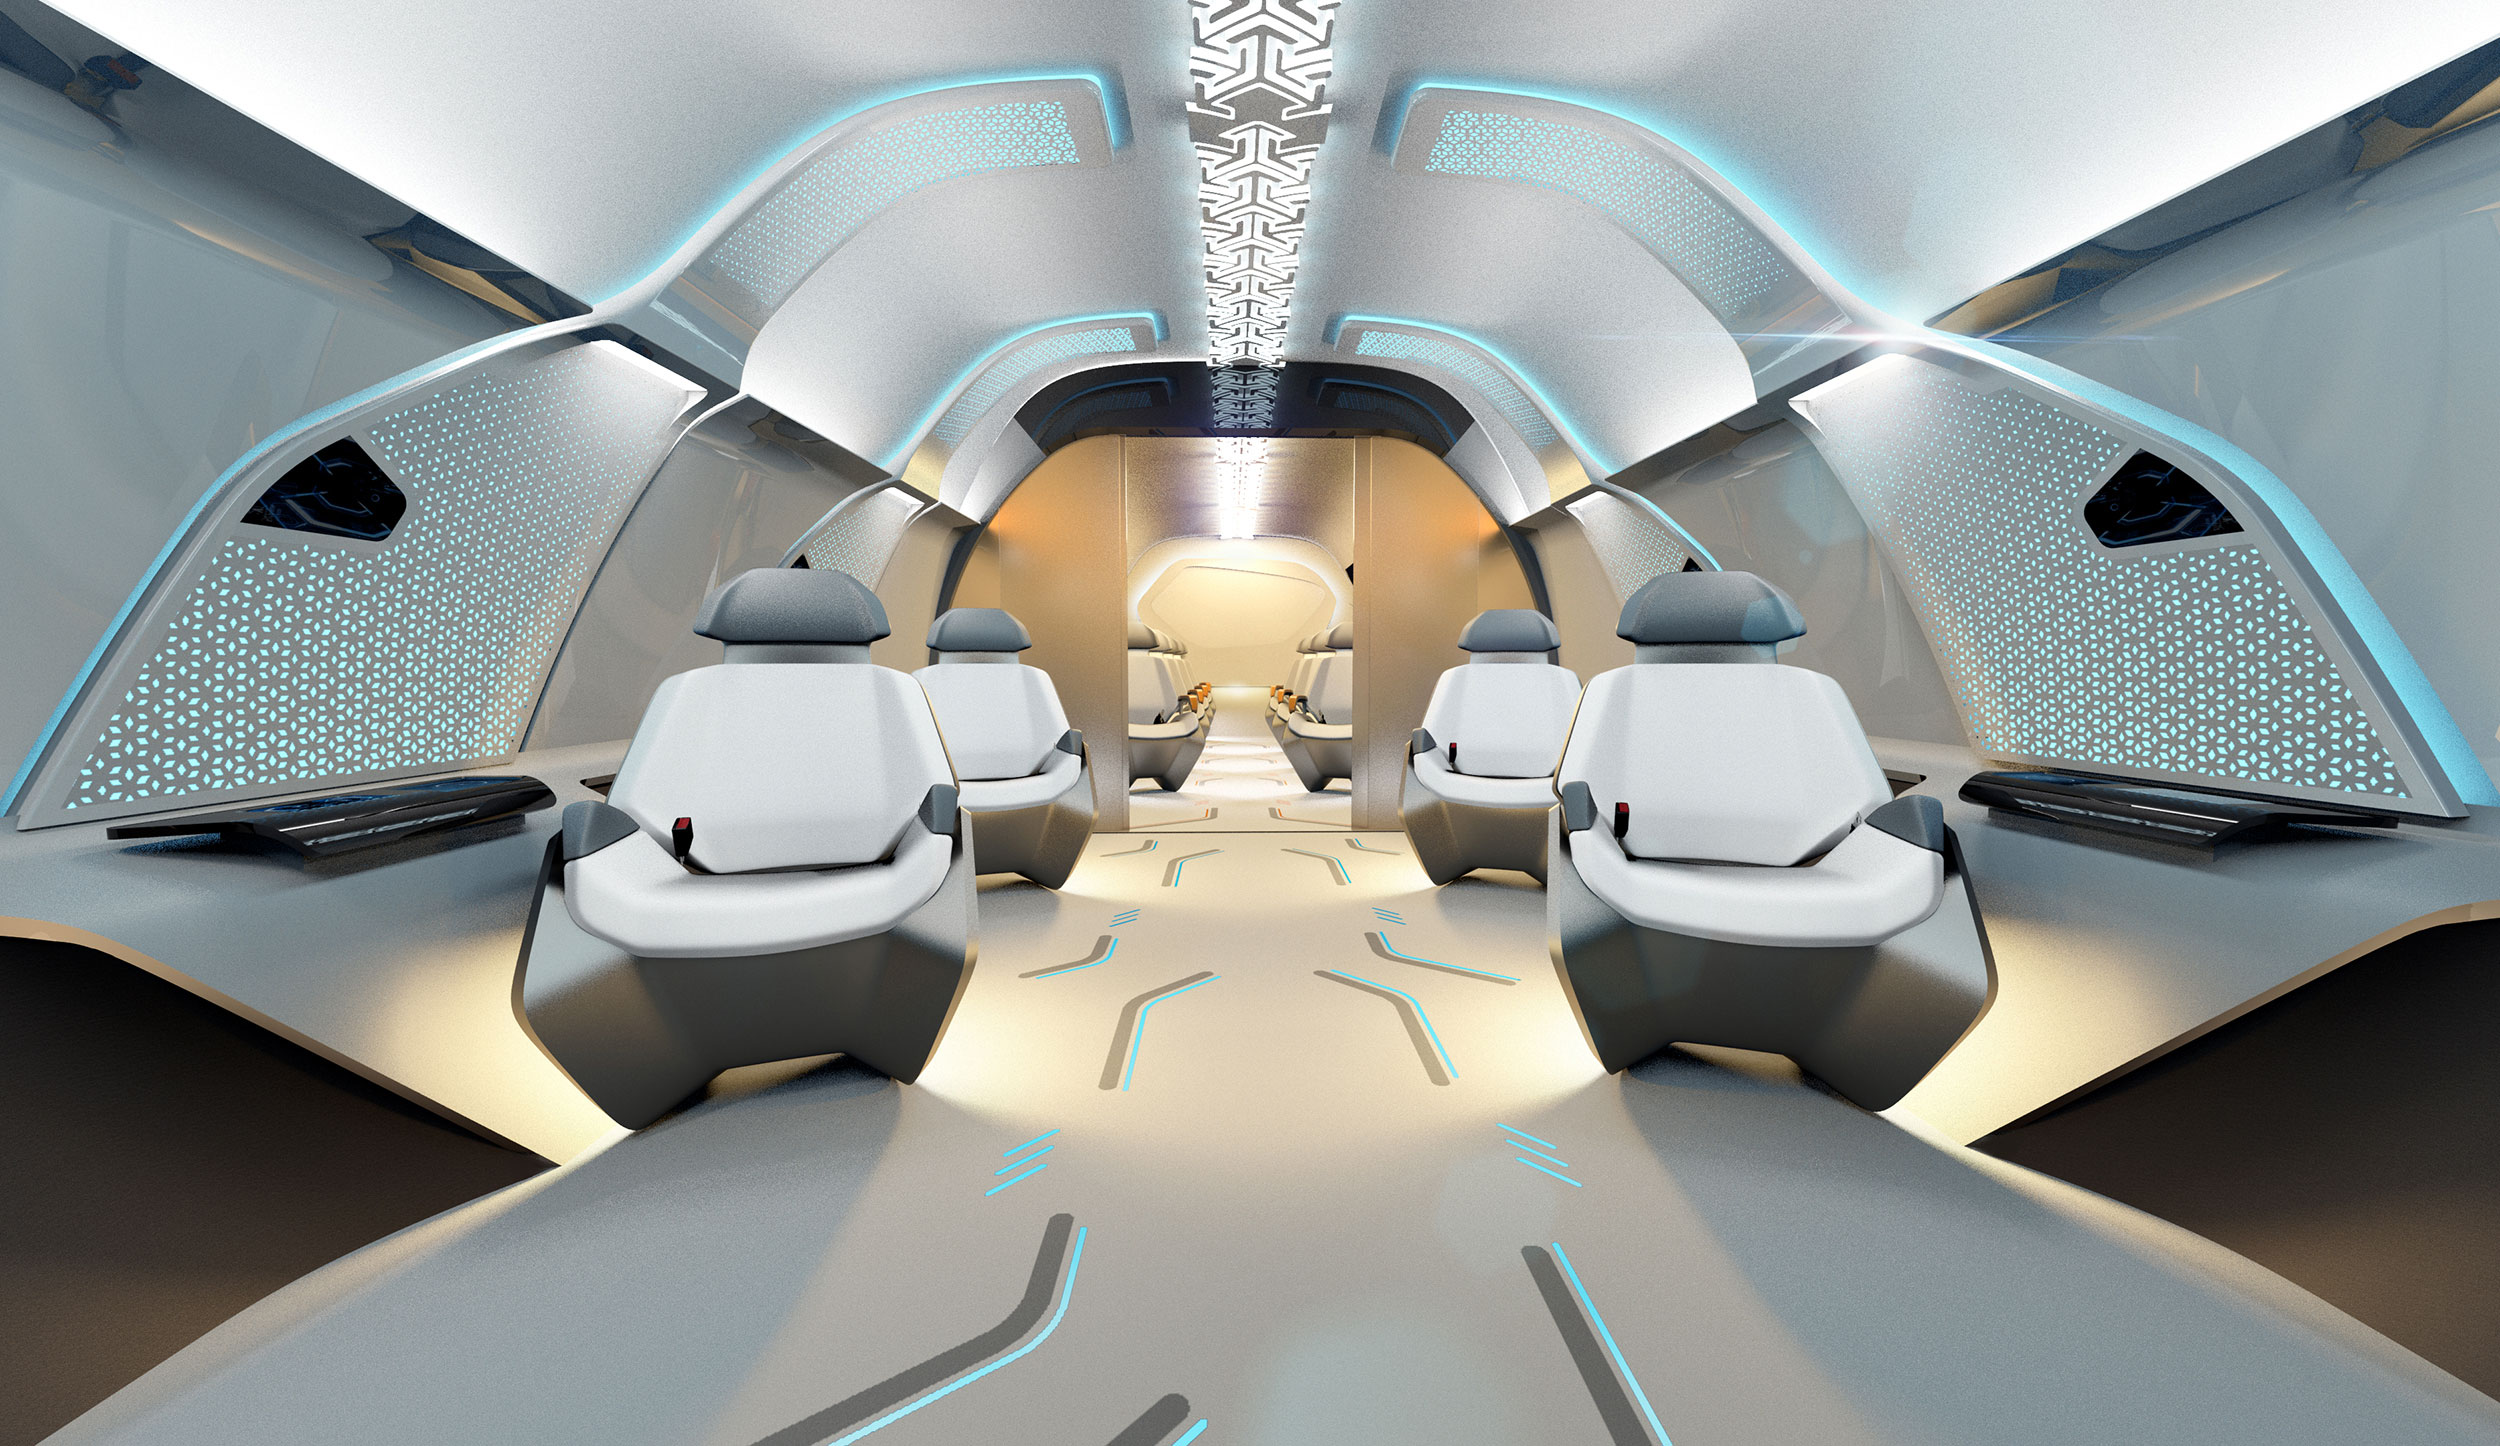 hyperloop seats in capsule